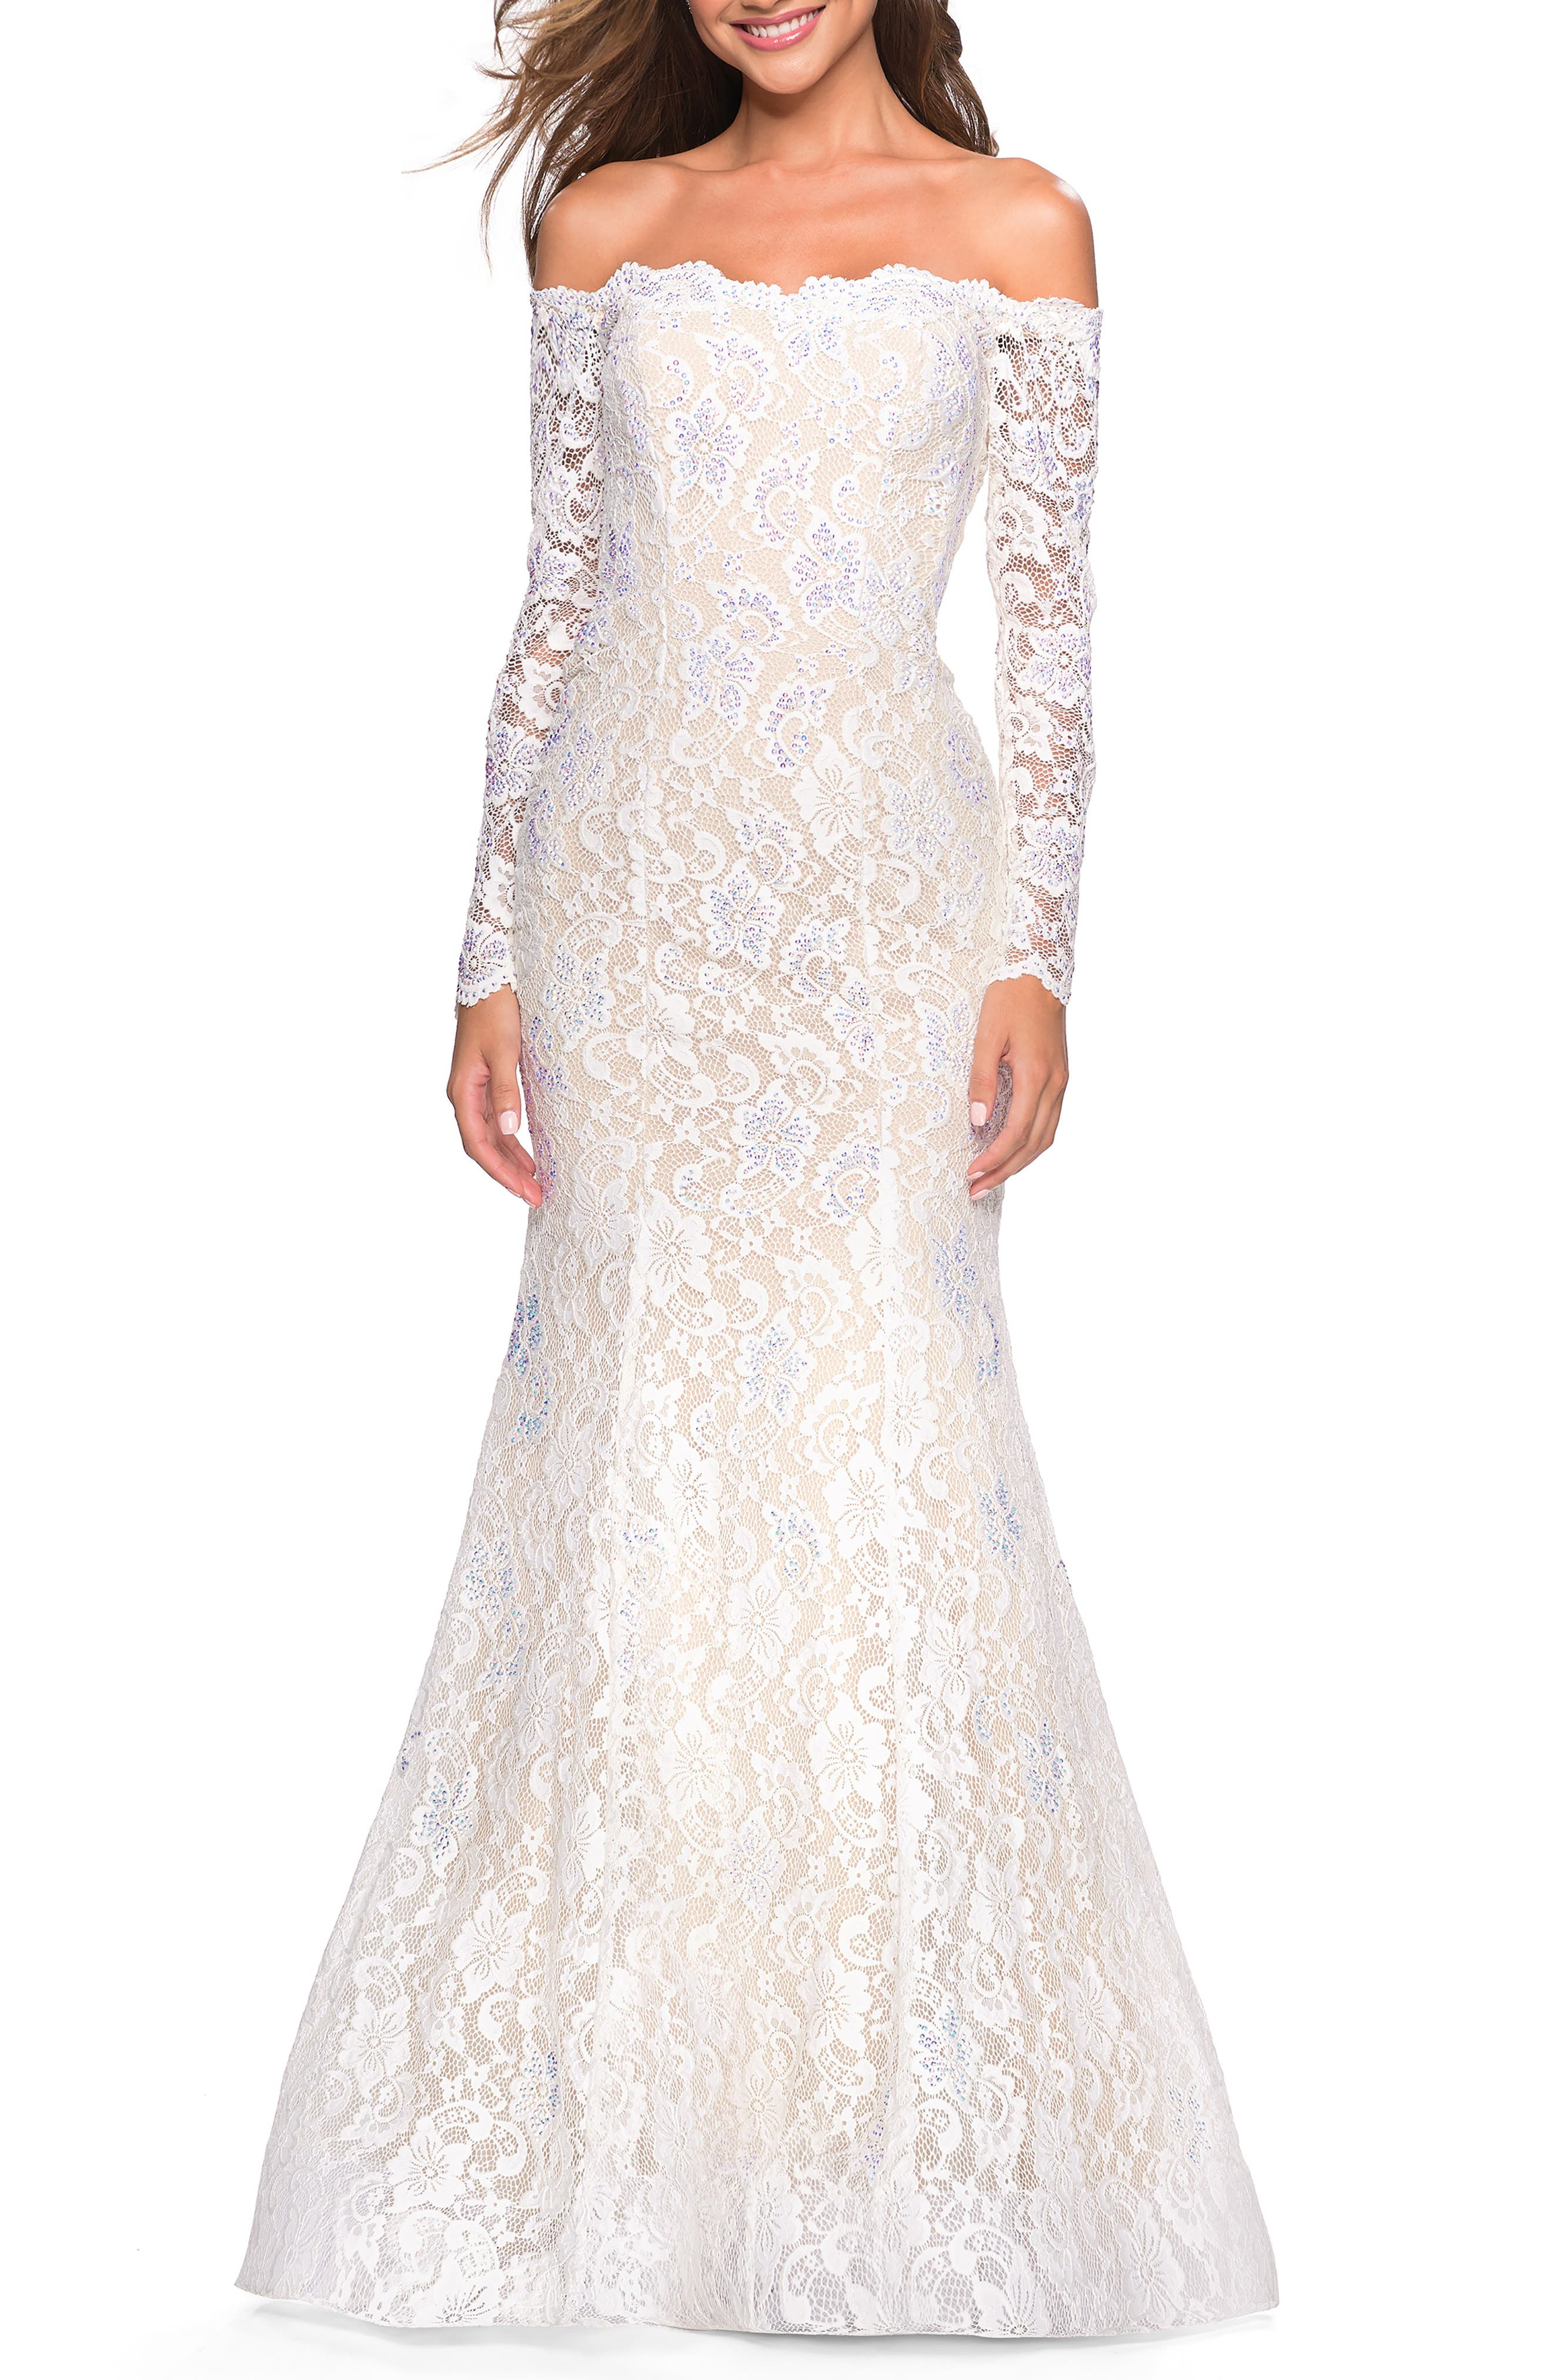 Bring enchantment to your evening in this shoulder-baring gown covered in delicate floral lace with a back cutout and long illusion sleeves. Style Name: La Femme Off The Shoulder Long Sleeve Lace Gown. Style Number: 6043011. Available in stores.